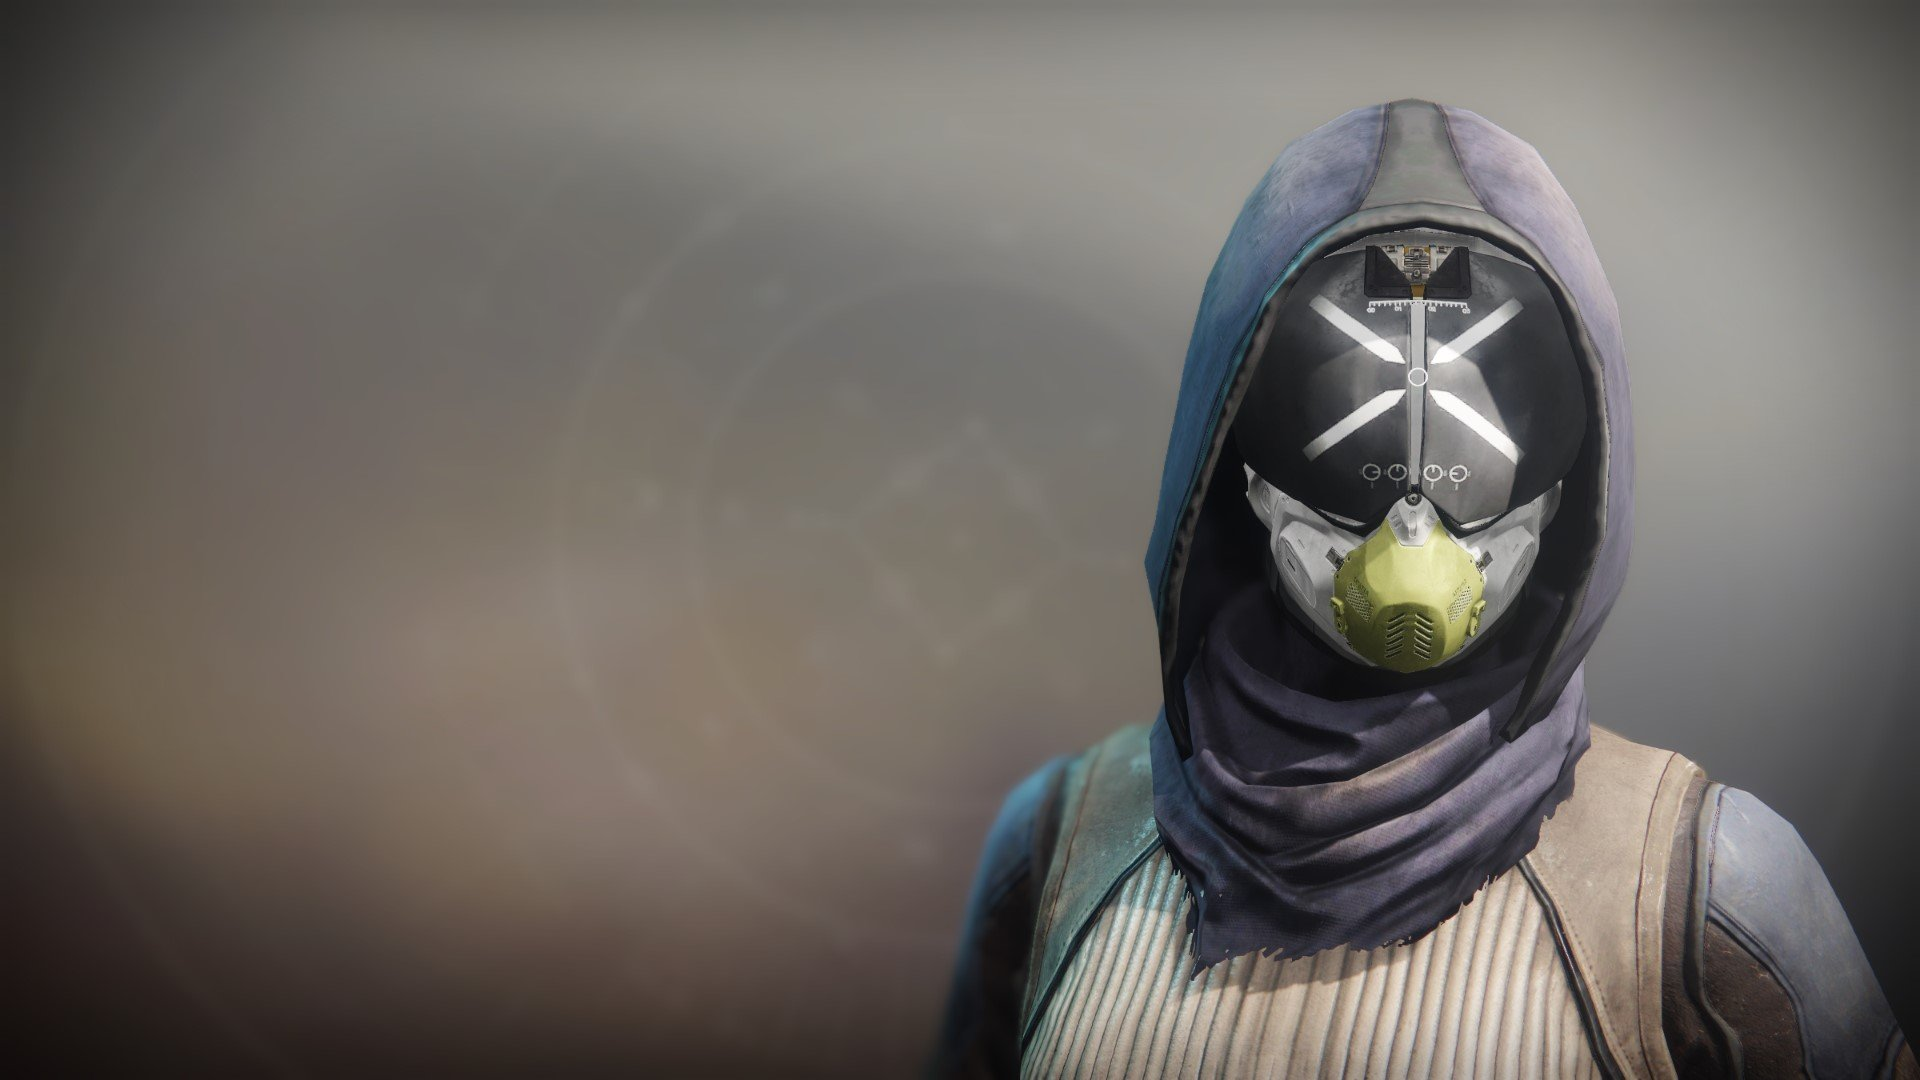 An in-game render of the Icarus Drifter Mask.